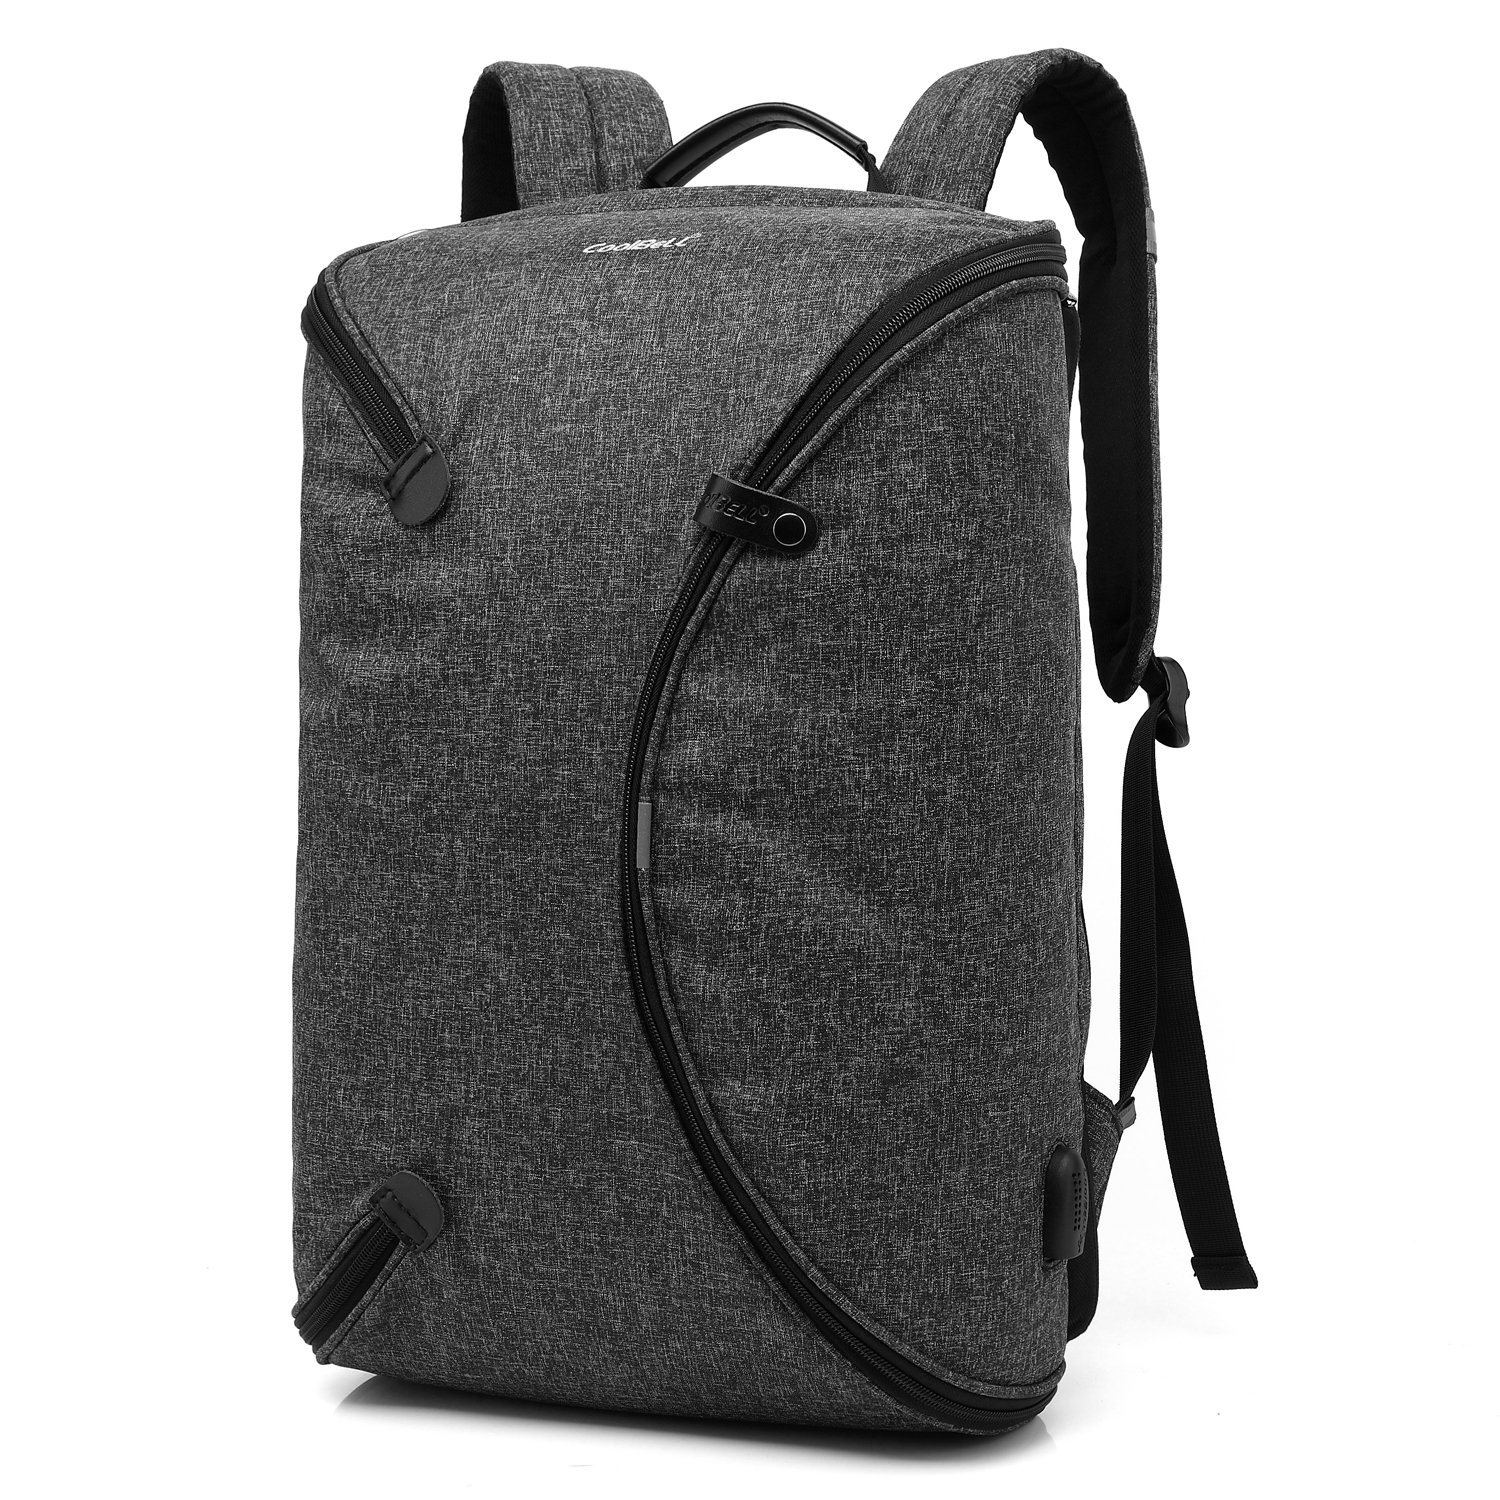 CoolBELL 15.6 Inch Laptop Backpack Bag With USB Charging Port/Personalized Foldable Travel Rucksack/Water-resistant Knapsack/Multi-functional Protective Day Pack For Men/Women / Teens (Black)